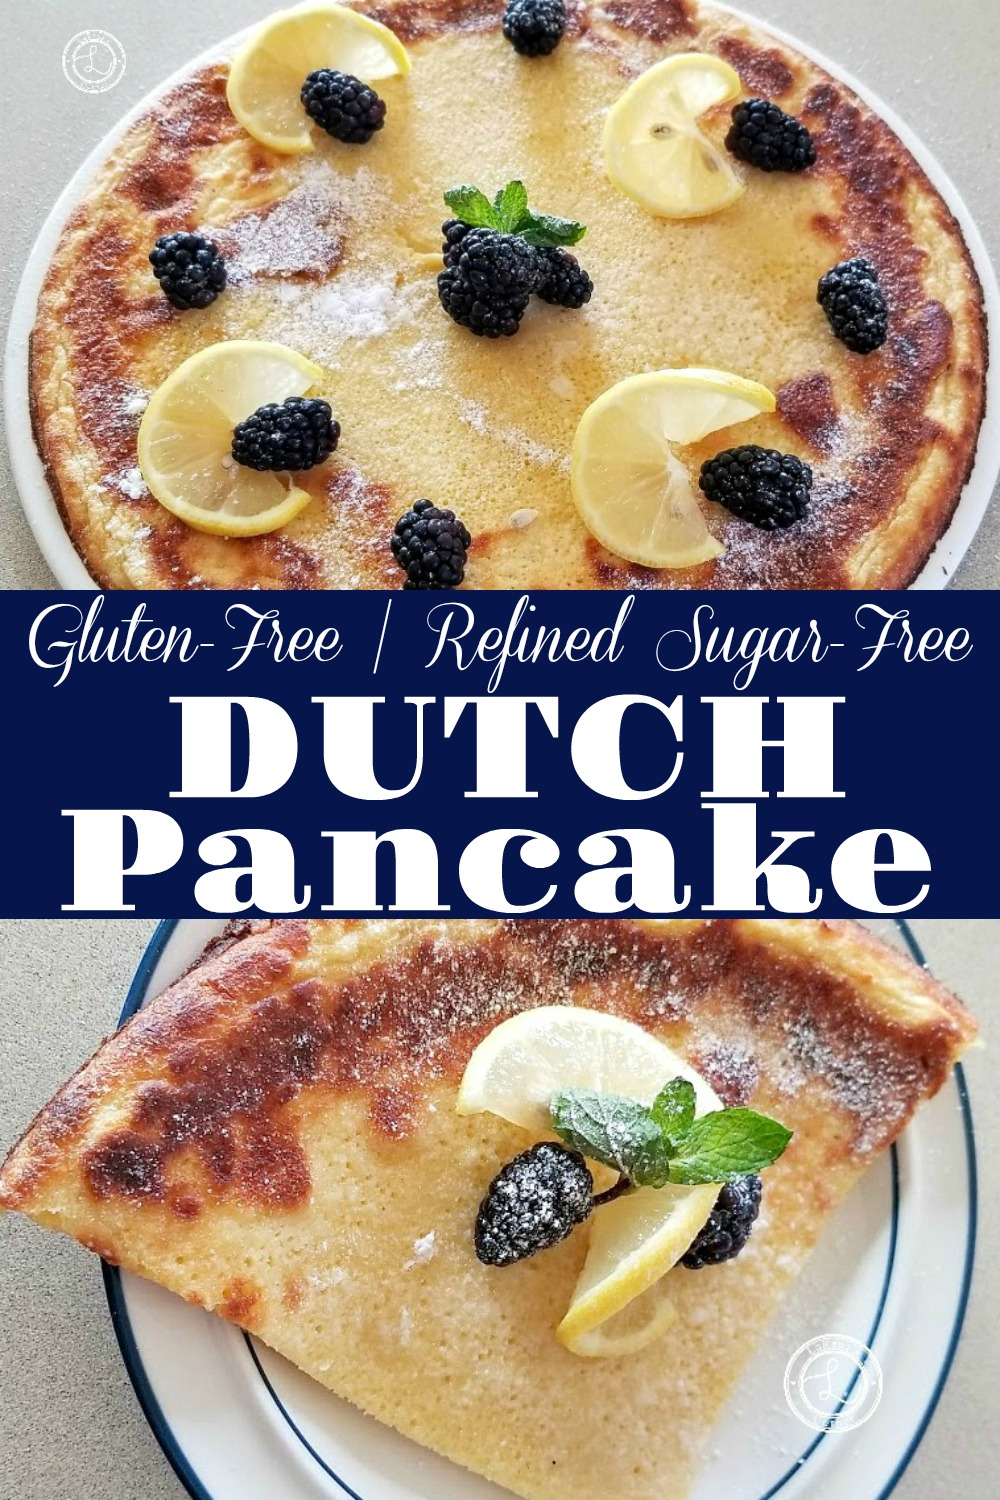 Gluten-Free Dutch Pancake on a plate and a slice on a plate